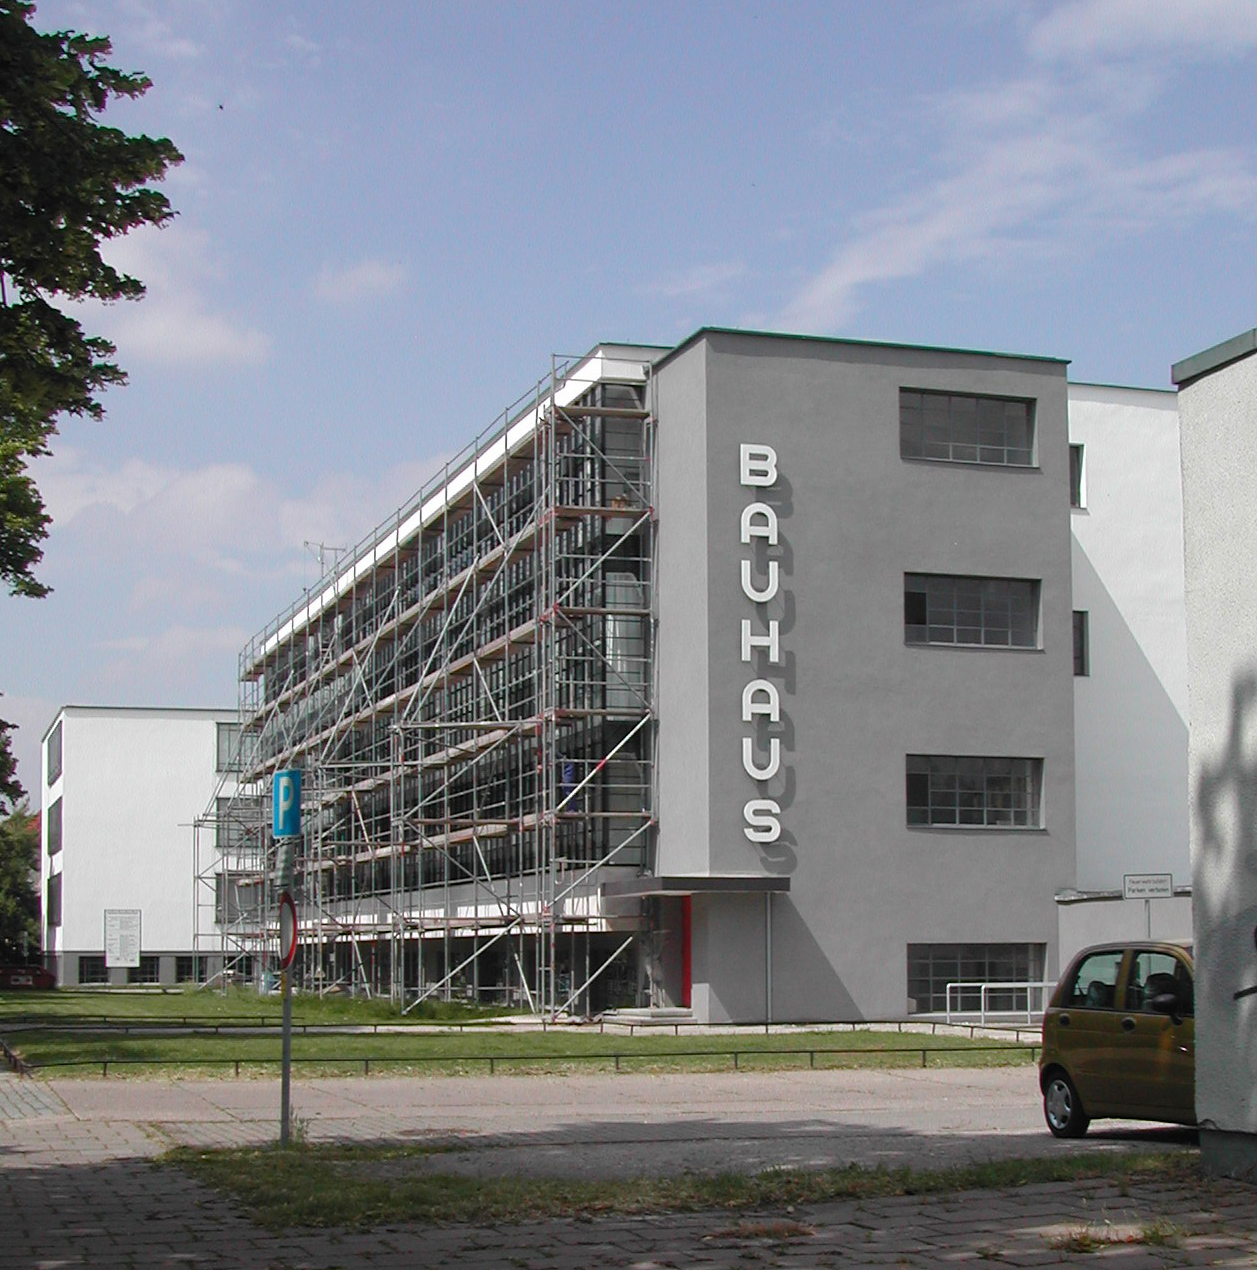 Bauhaus trifecta the three bauhaus museums in germany for Bauhaus replica deutschland